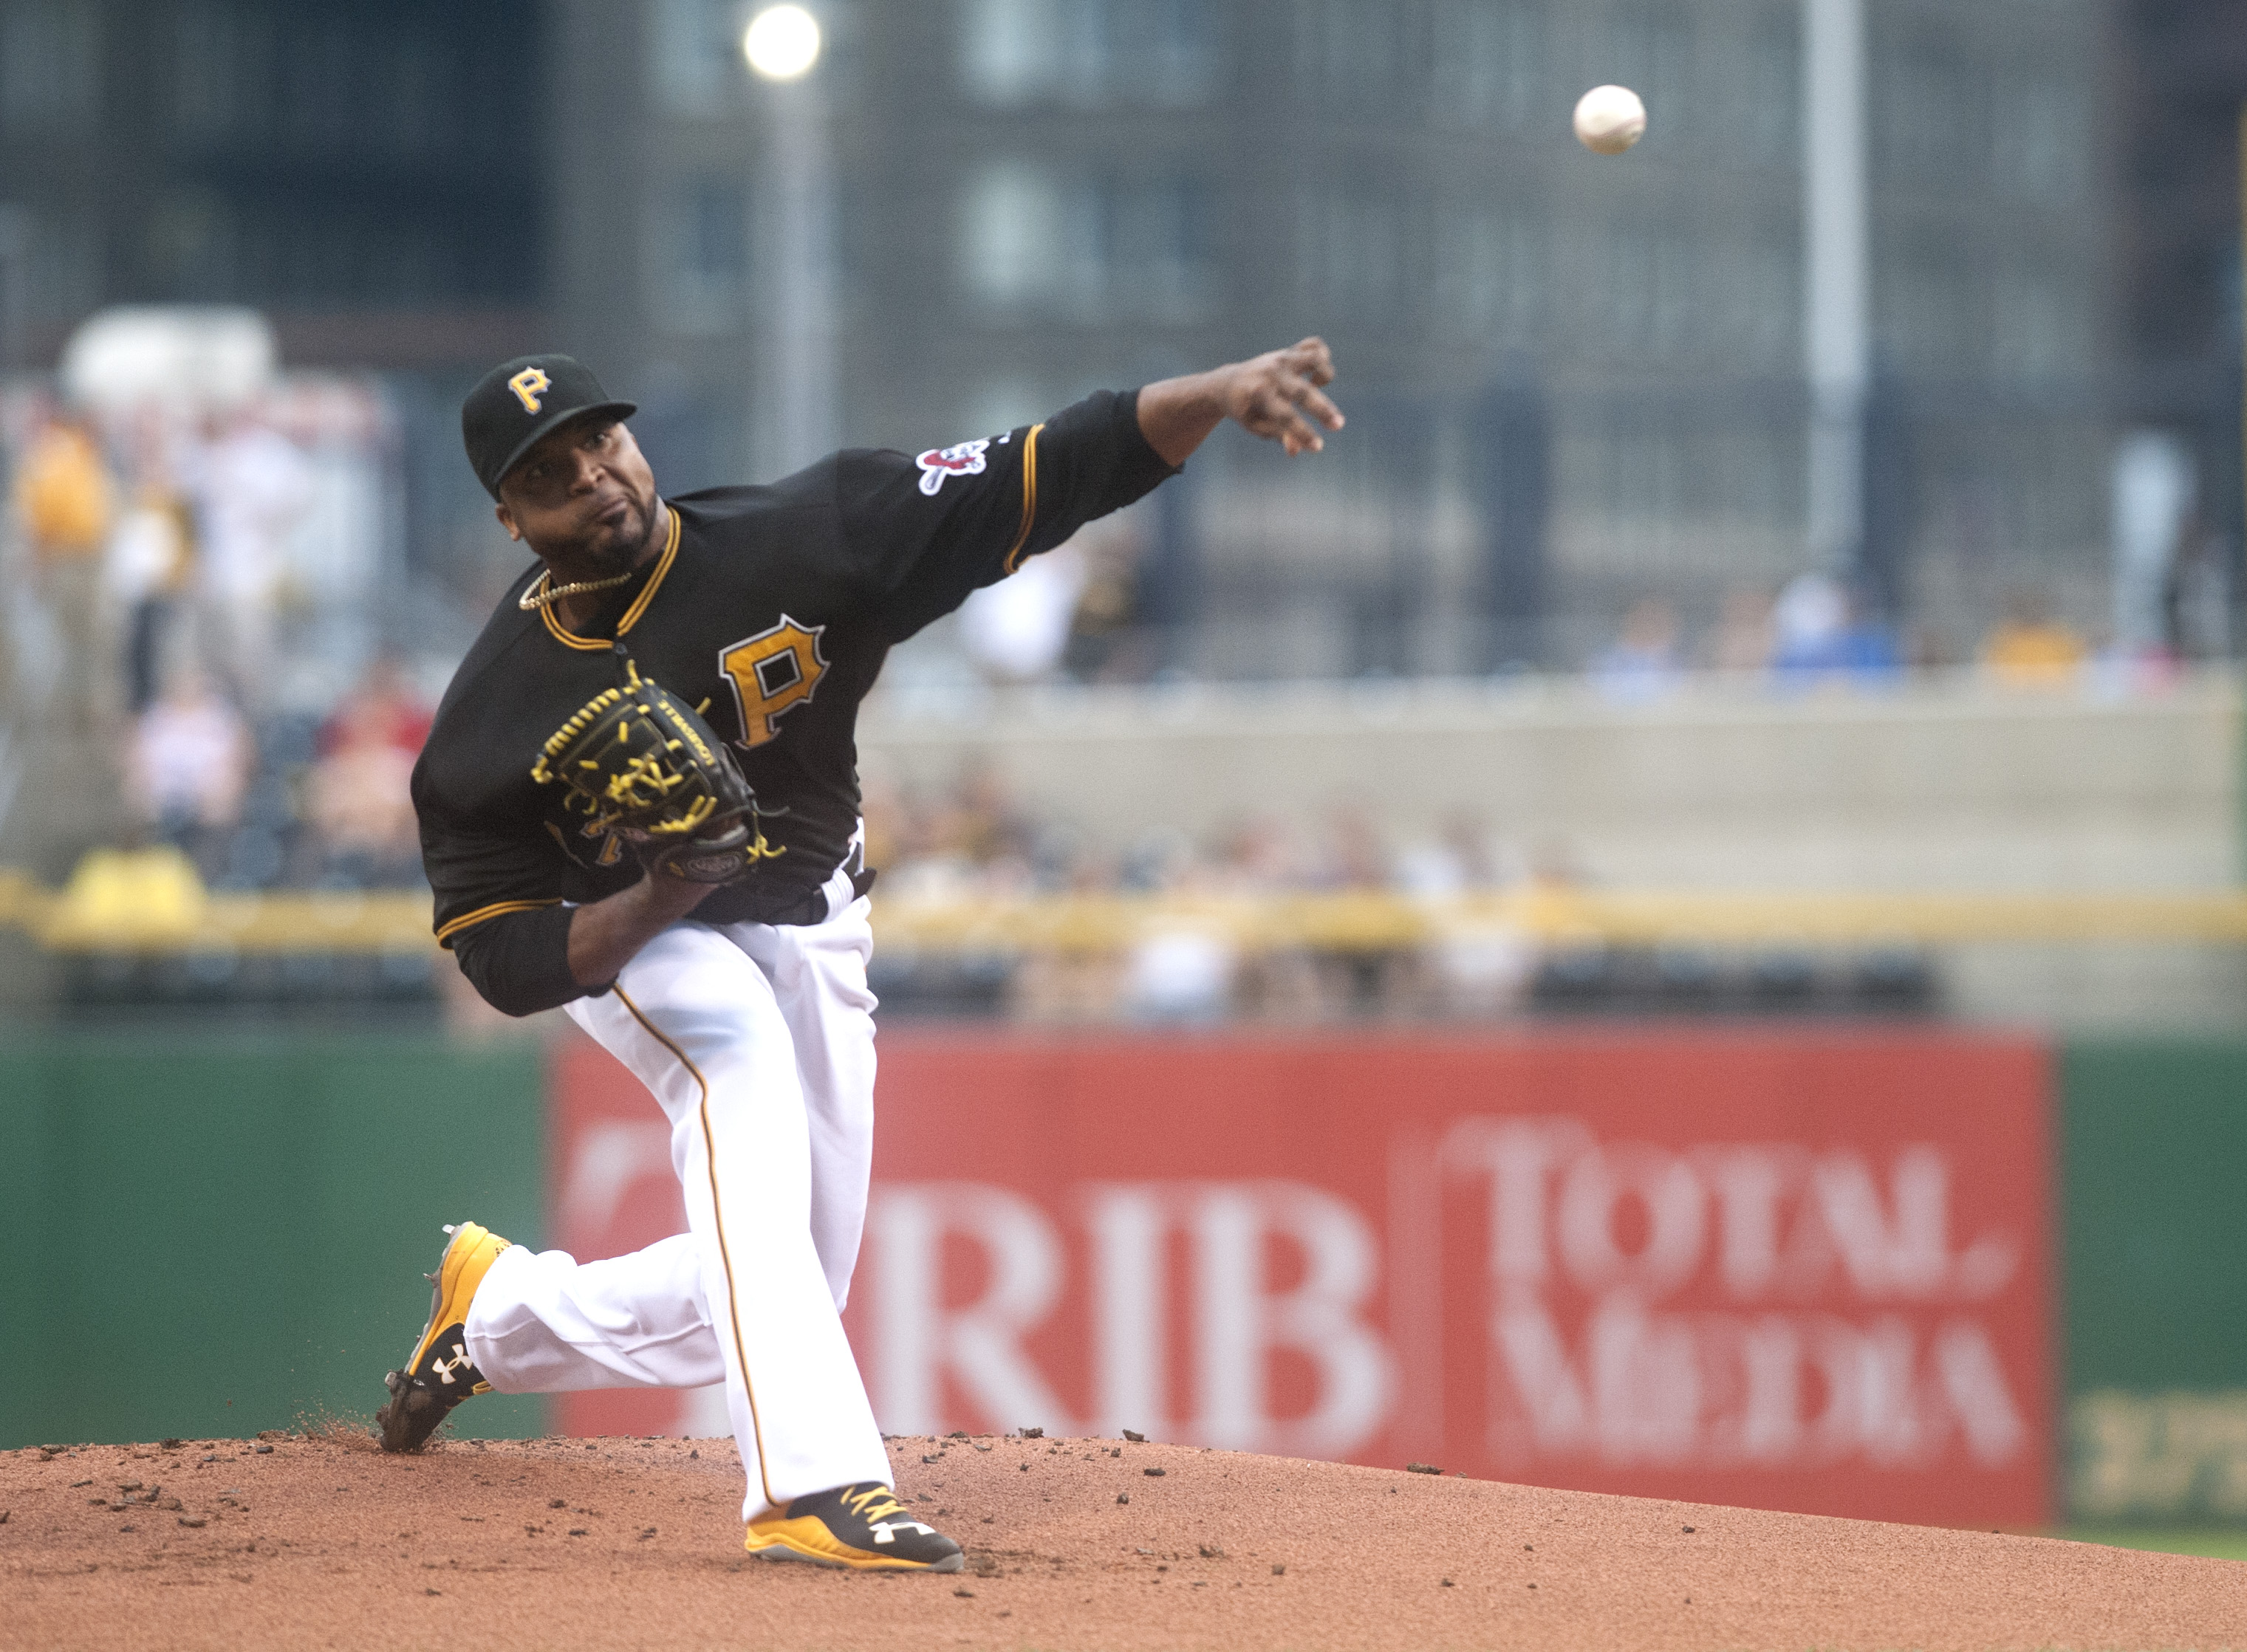 Pittsburgh Pirates starter Francisco Liriano pitches during the first inning of a baseball game against the San Diego Padres in Pittsburgh, Tuesday, July 7, 2015. (AP Photo/Vincent Pugliese)